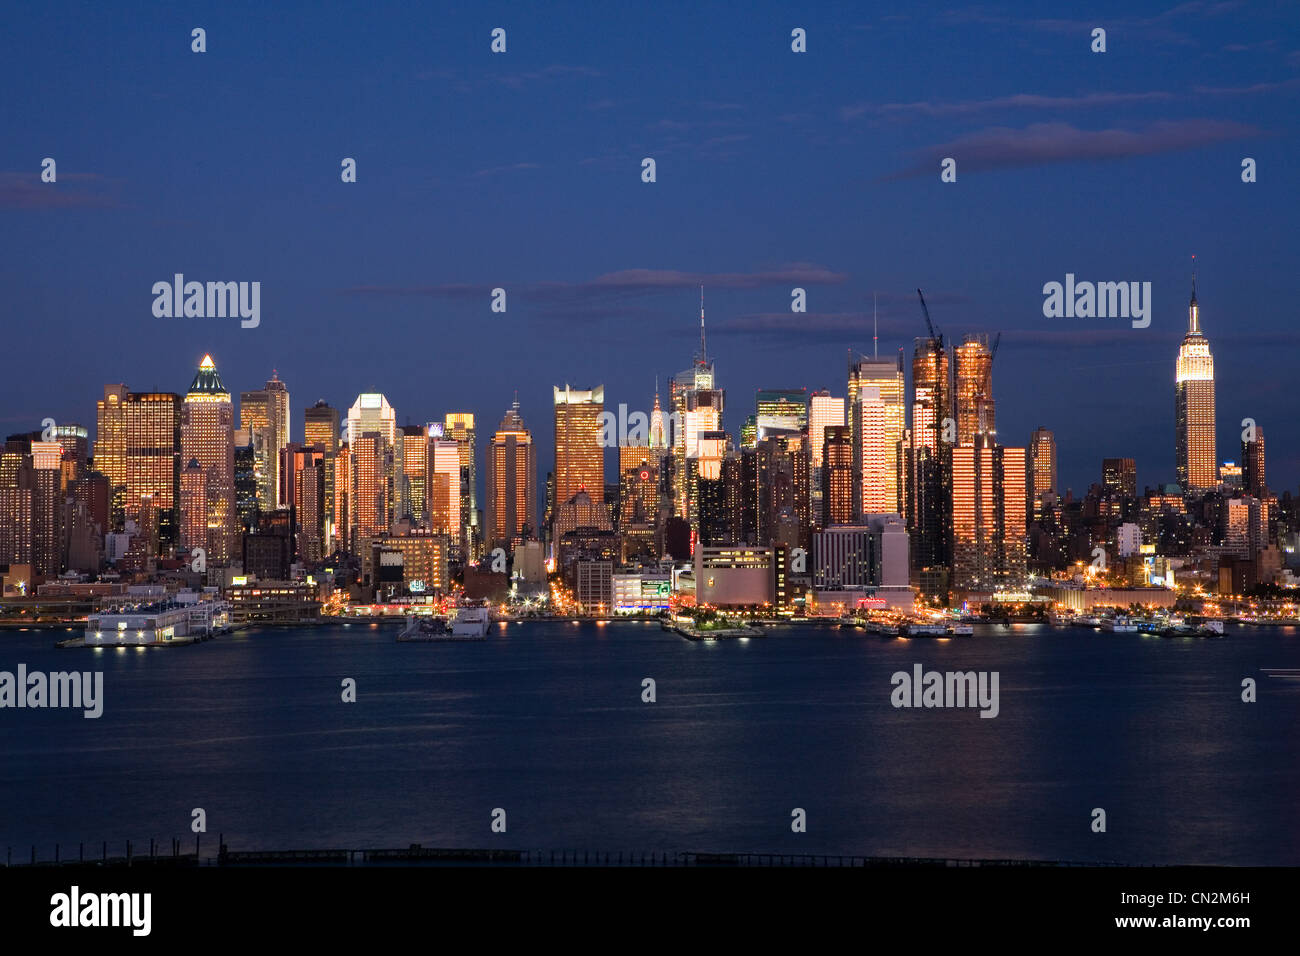 View of Manhattan and Hudson River at dusk, New York City, USA - Stock Image